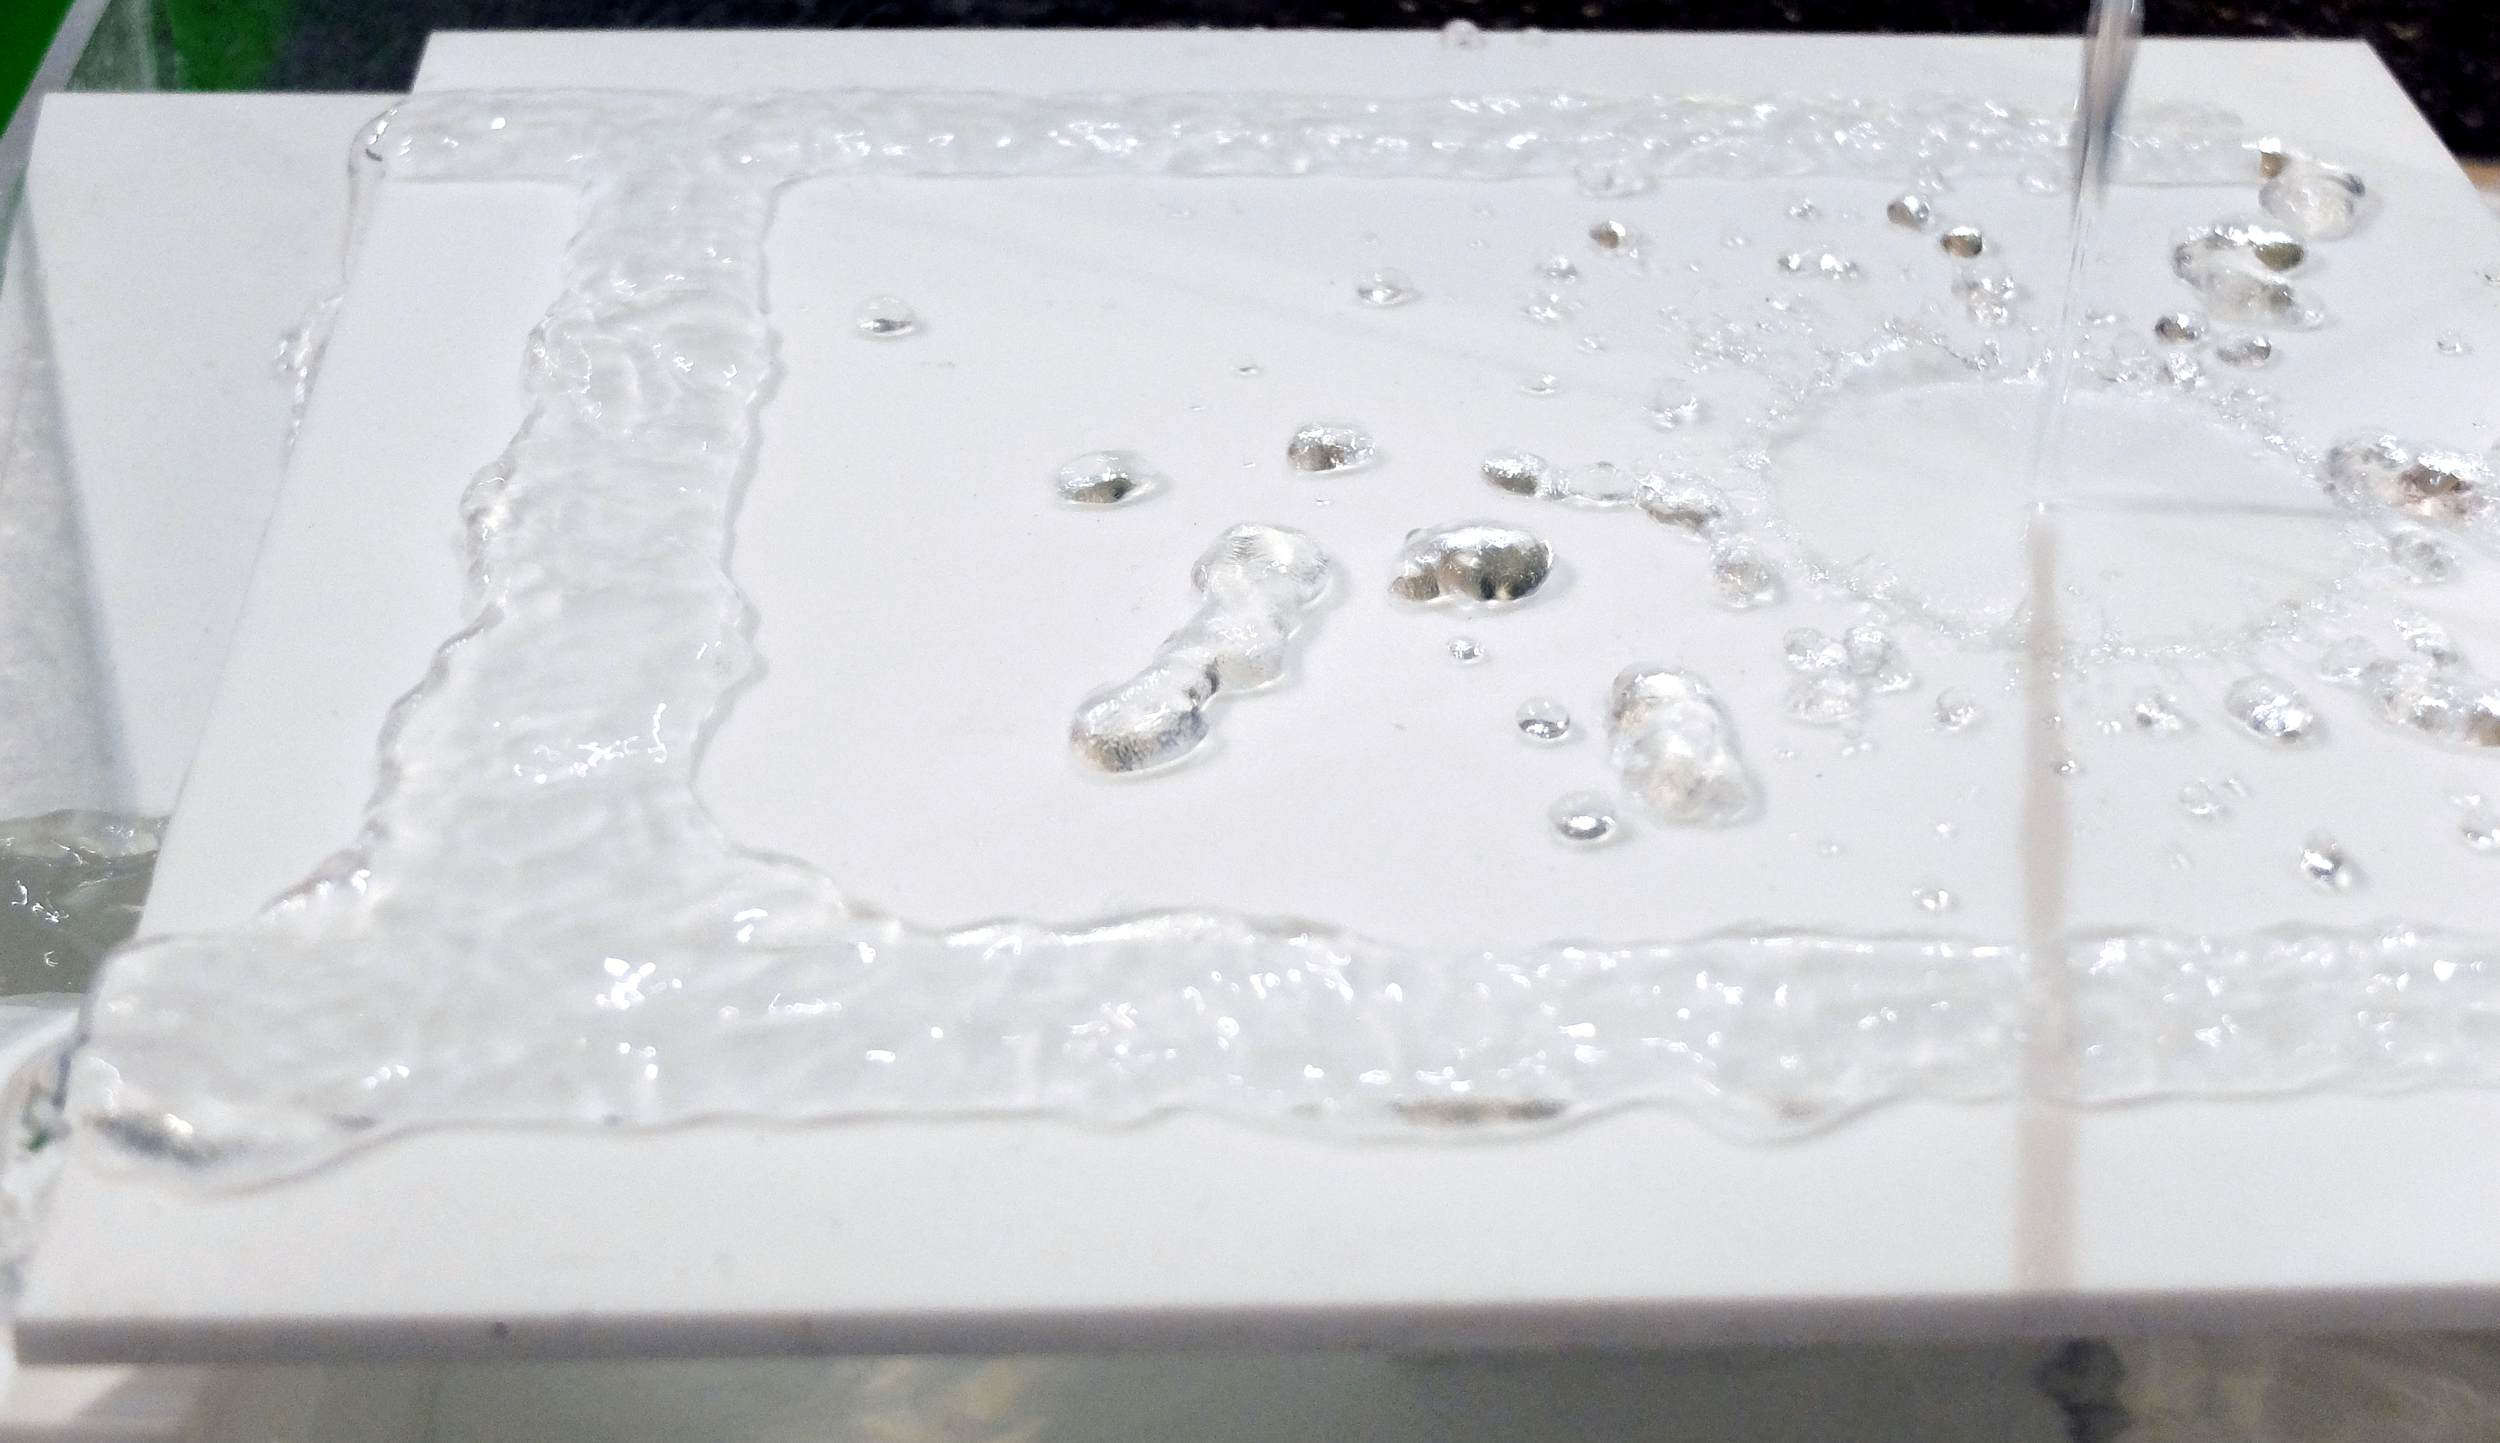 Superhydrophobic Fountain